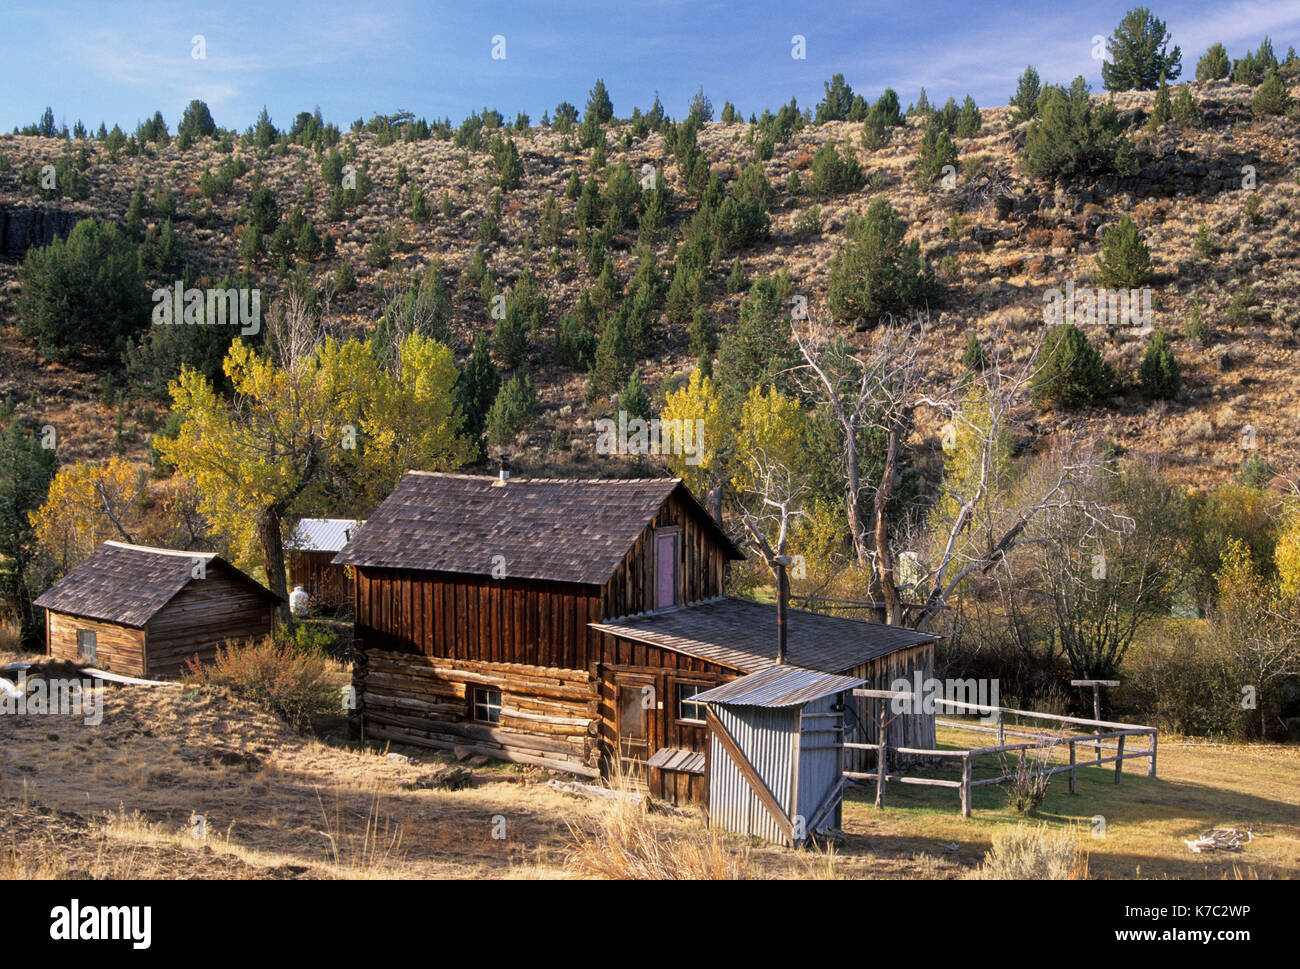 Frederick Riddle Riddle Ranch House, Distrito Histórico Nacional, Steens Mountain Recreation Area, Oregón Imagen De Stock